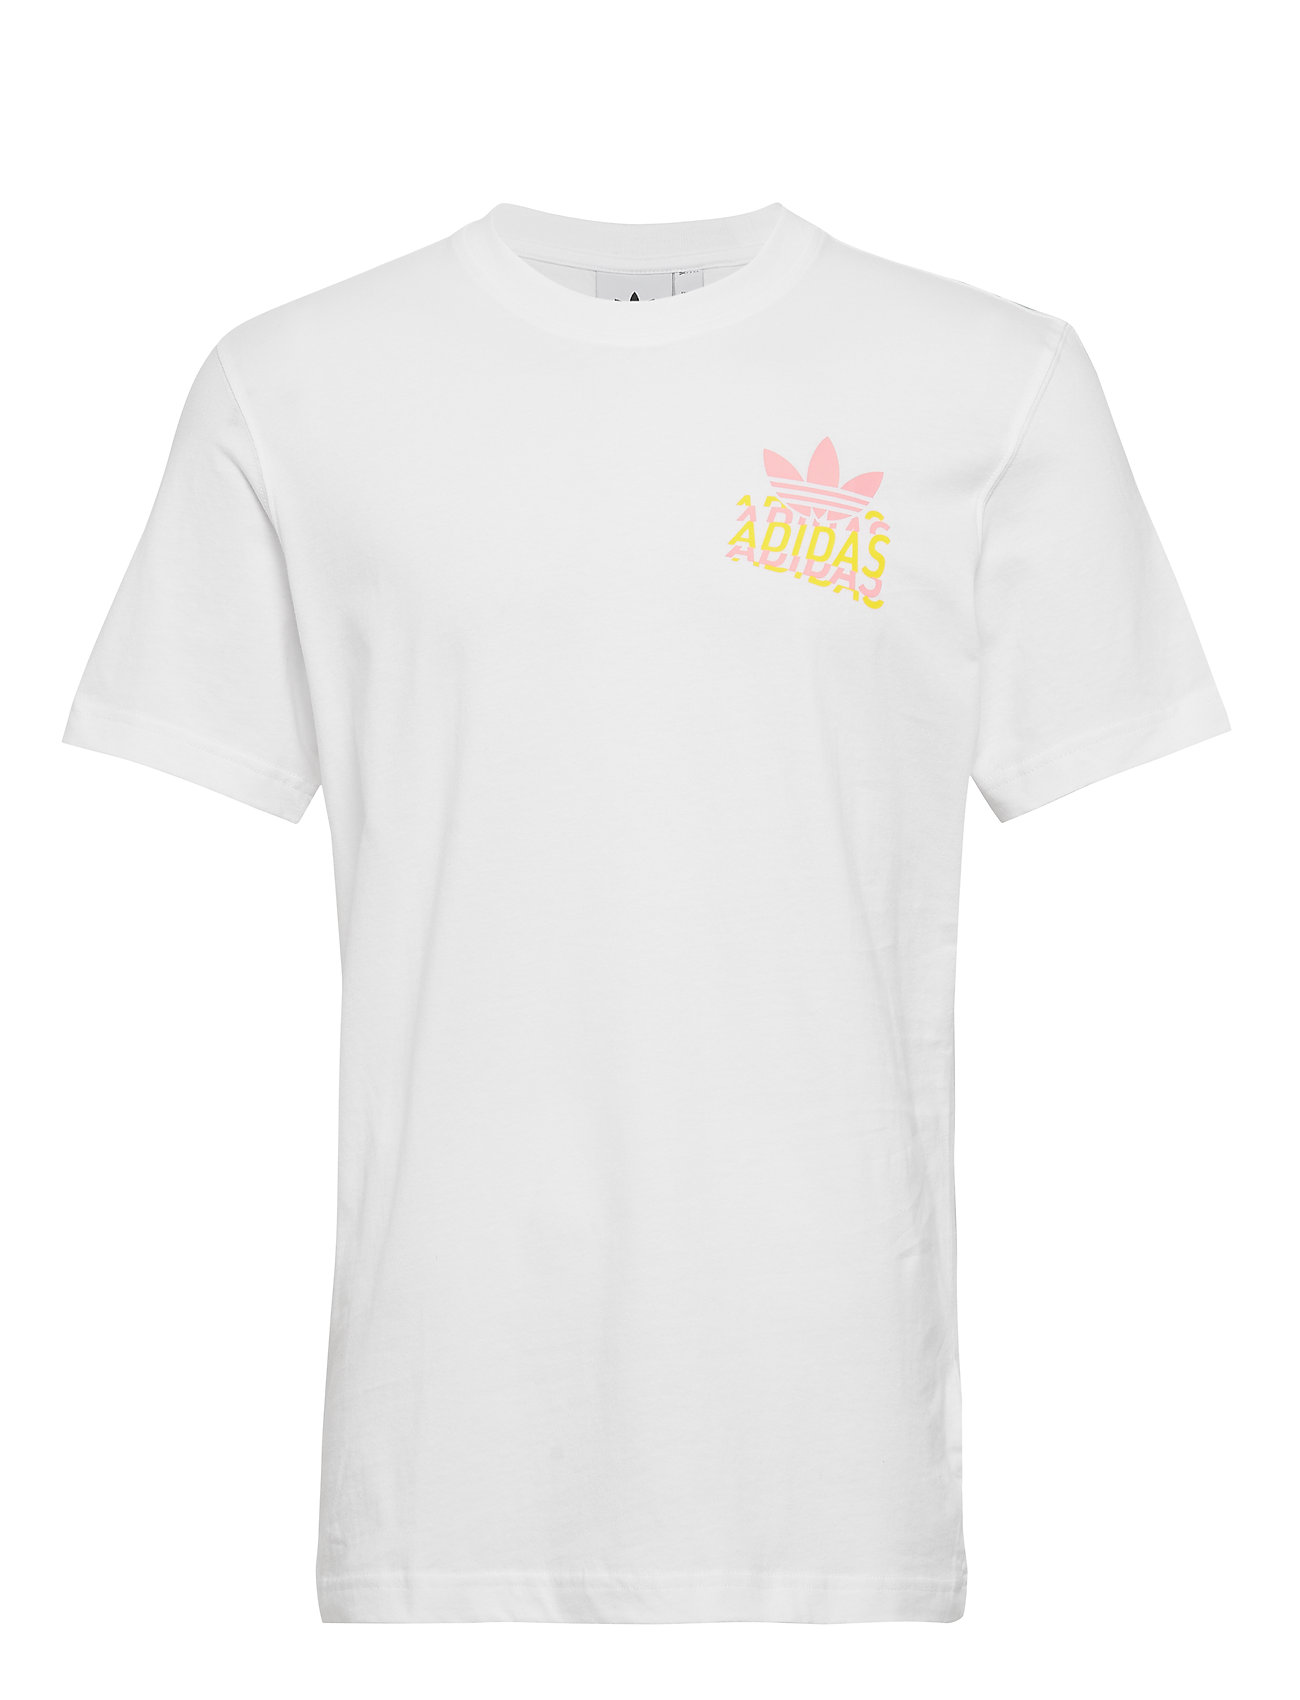 adidas Originals MULTI FADE SP T - WHITE